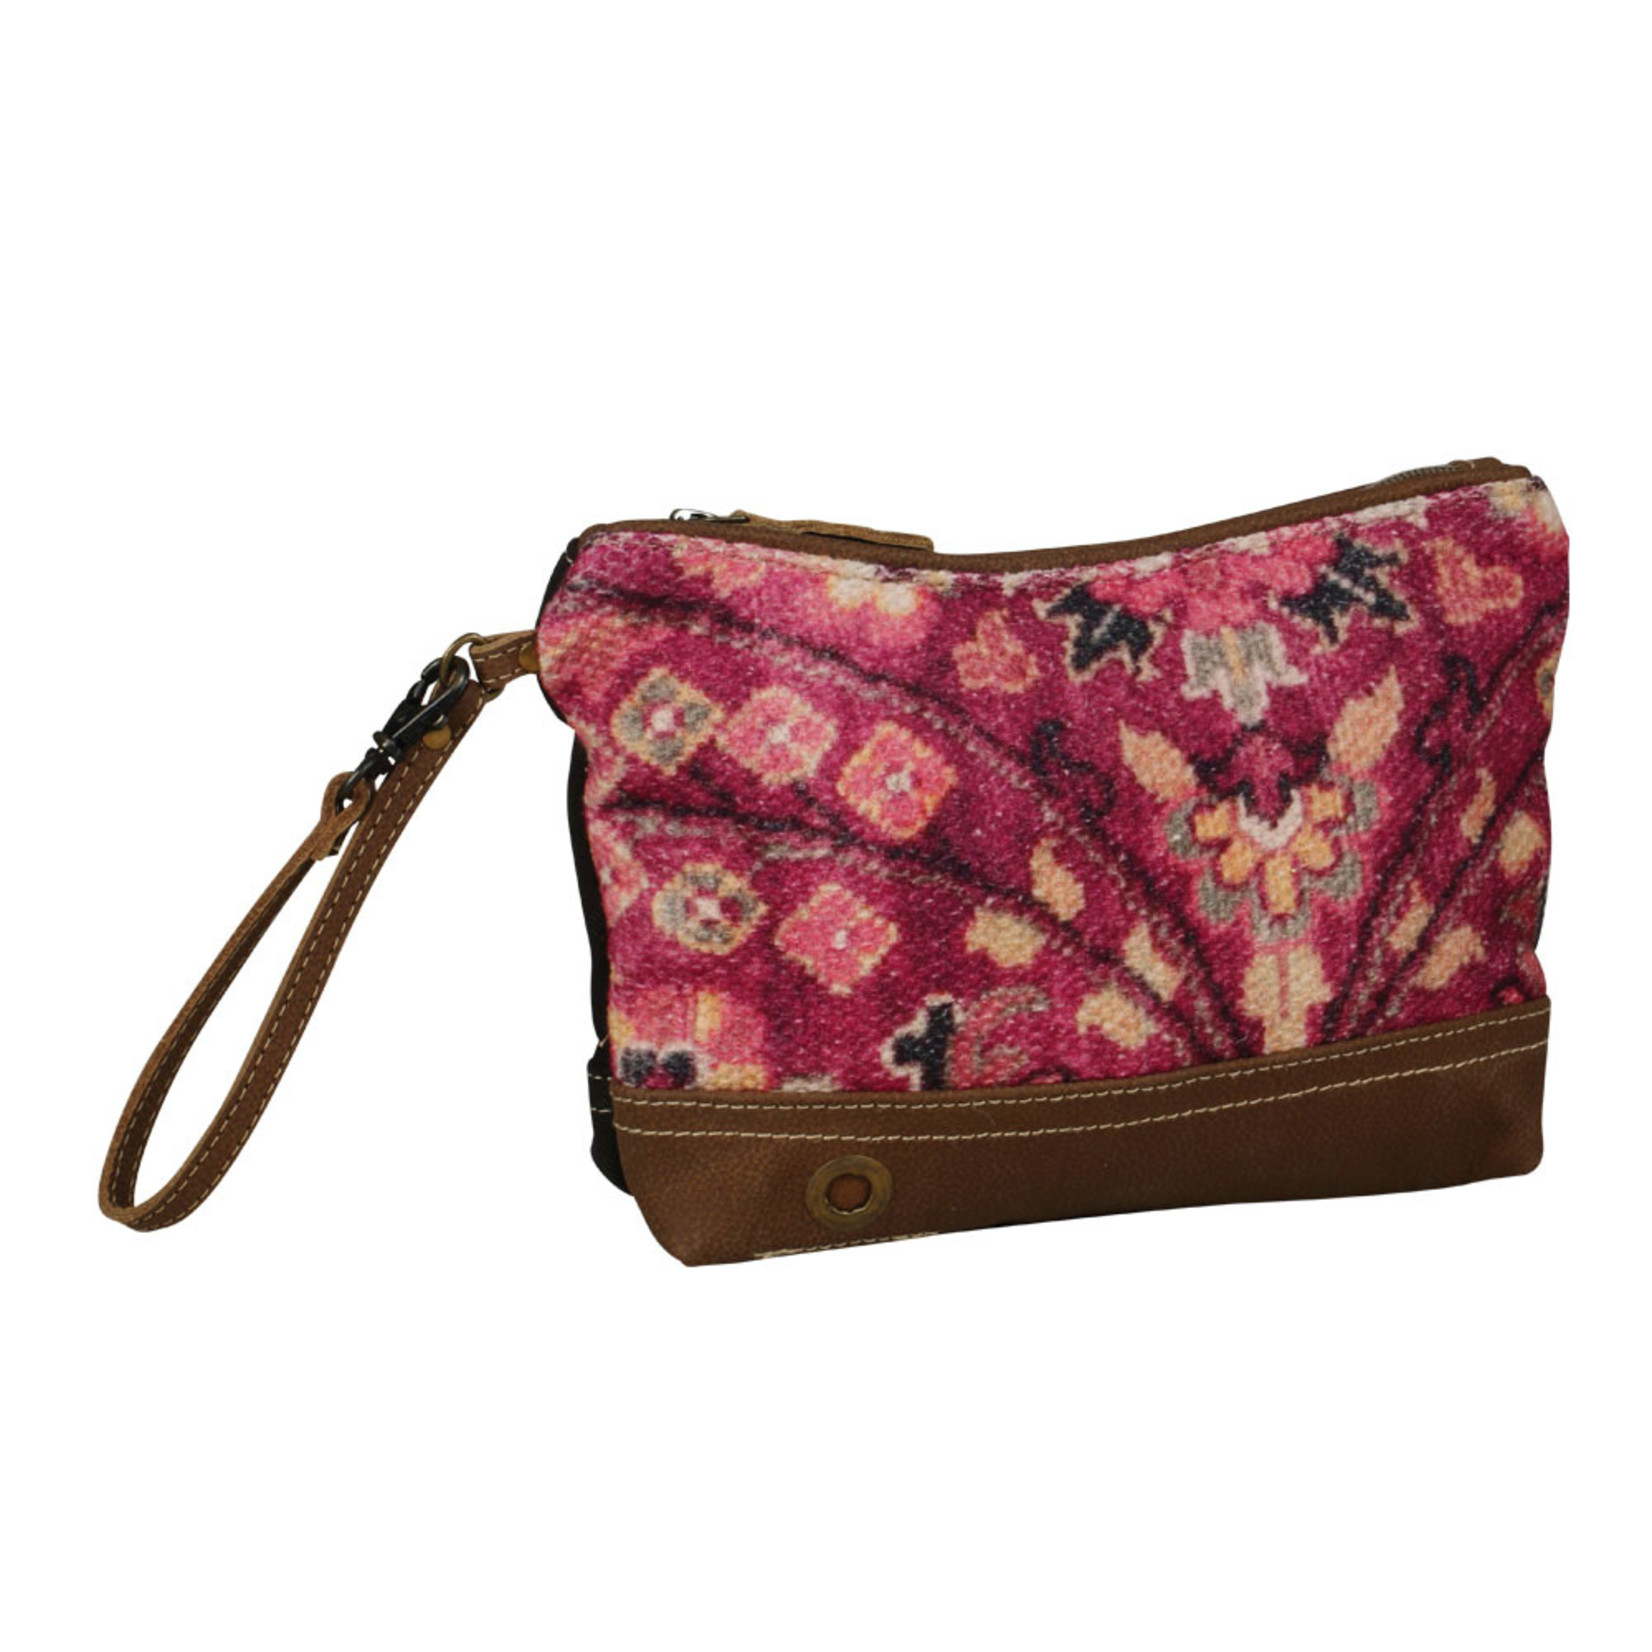 Myra Bags S-2119 Matchless Pouch/Wristlet